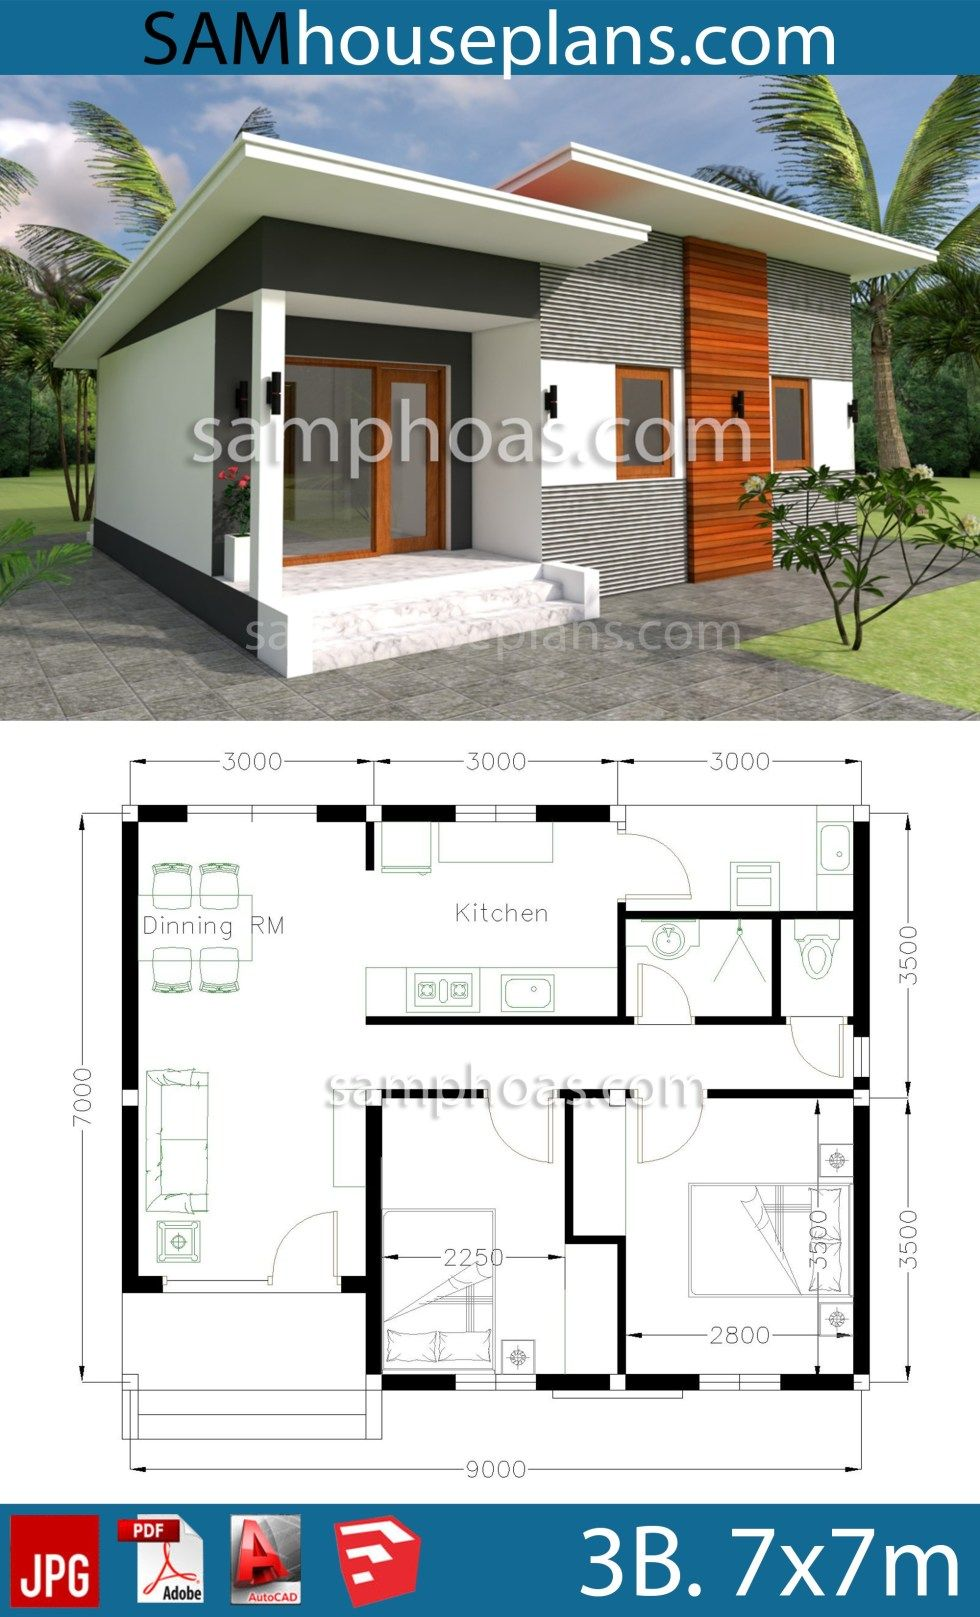 House Plans 9x7m With 2 Bedrooms Sam House Plans My House Plans Small House Roof Design House Roof Design